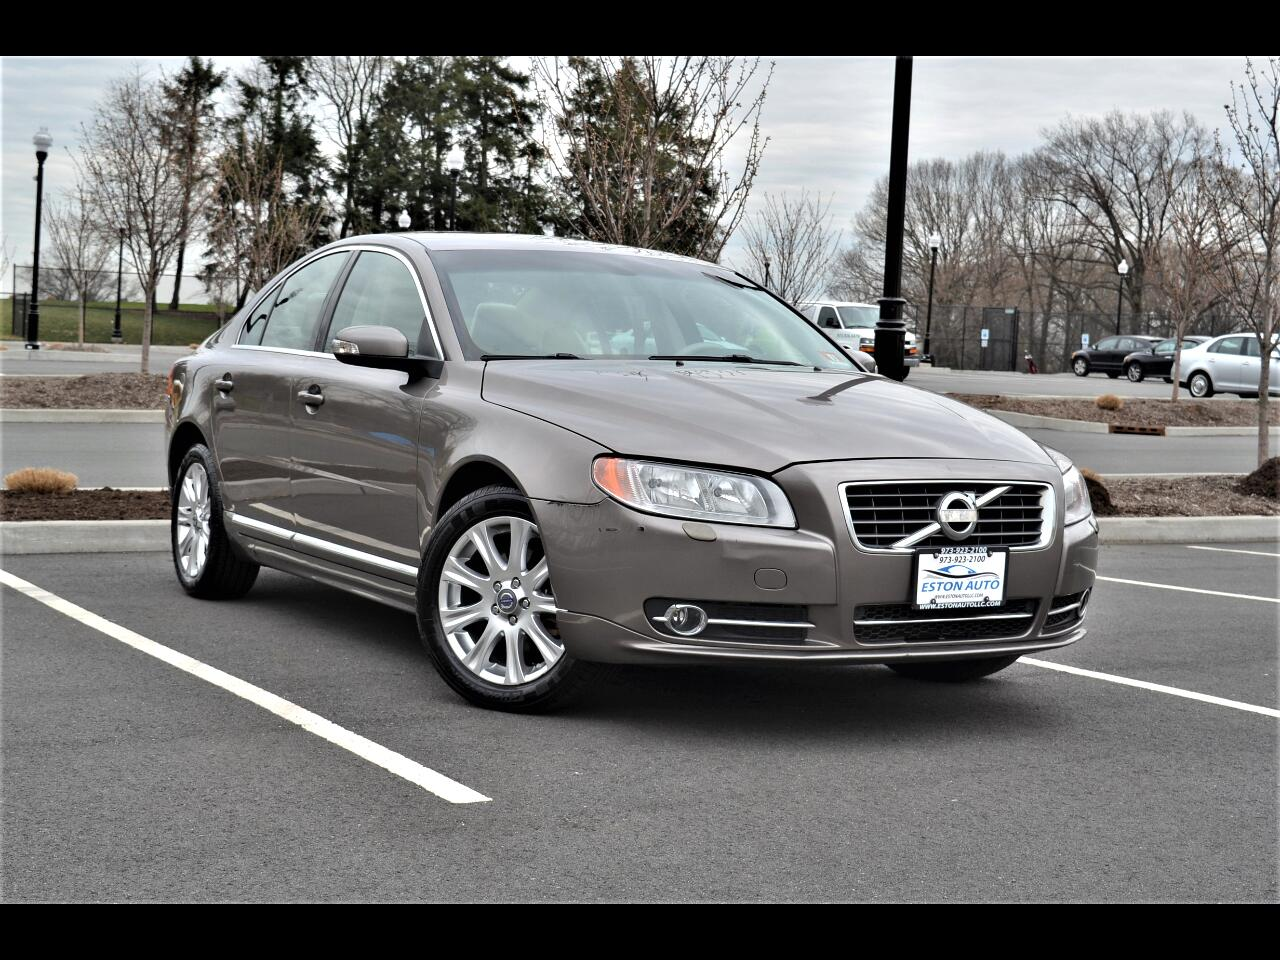 2011 Volvo S80 4dr Sdn 3.2L FWD w/Moonroof